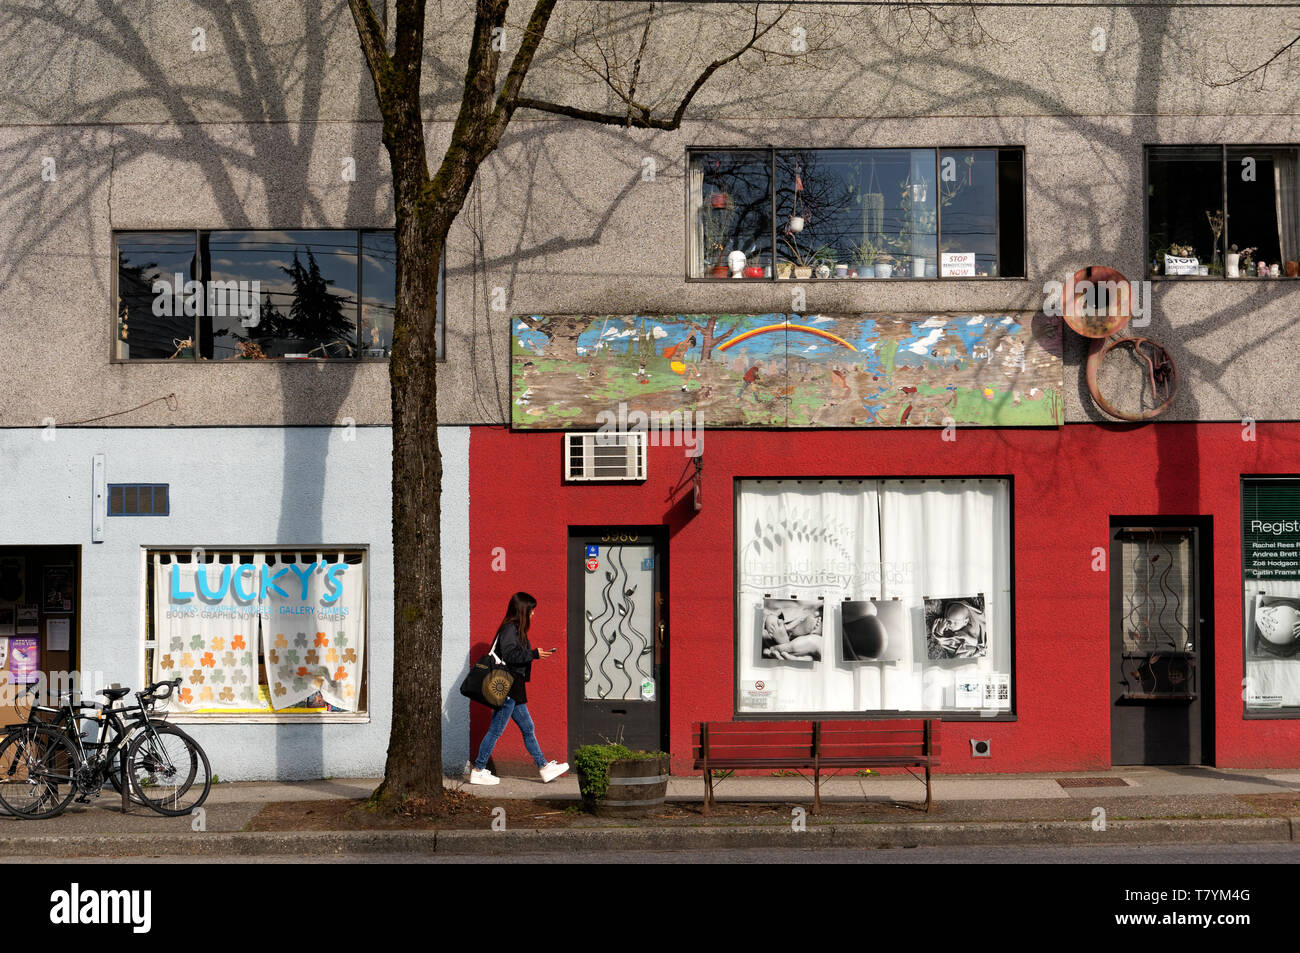 A young woman walking past colorful storefronts on Main Street, Vancouver, BC, Canada - Stock Image